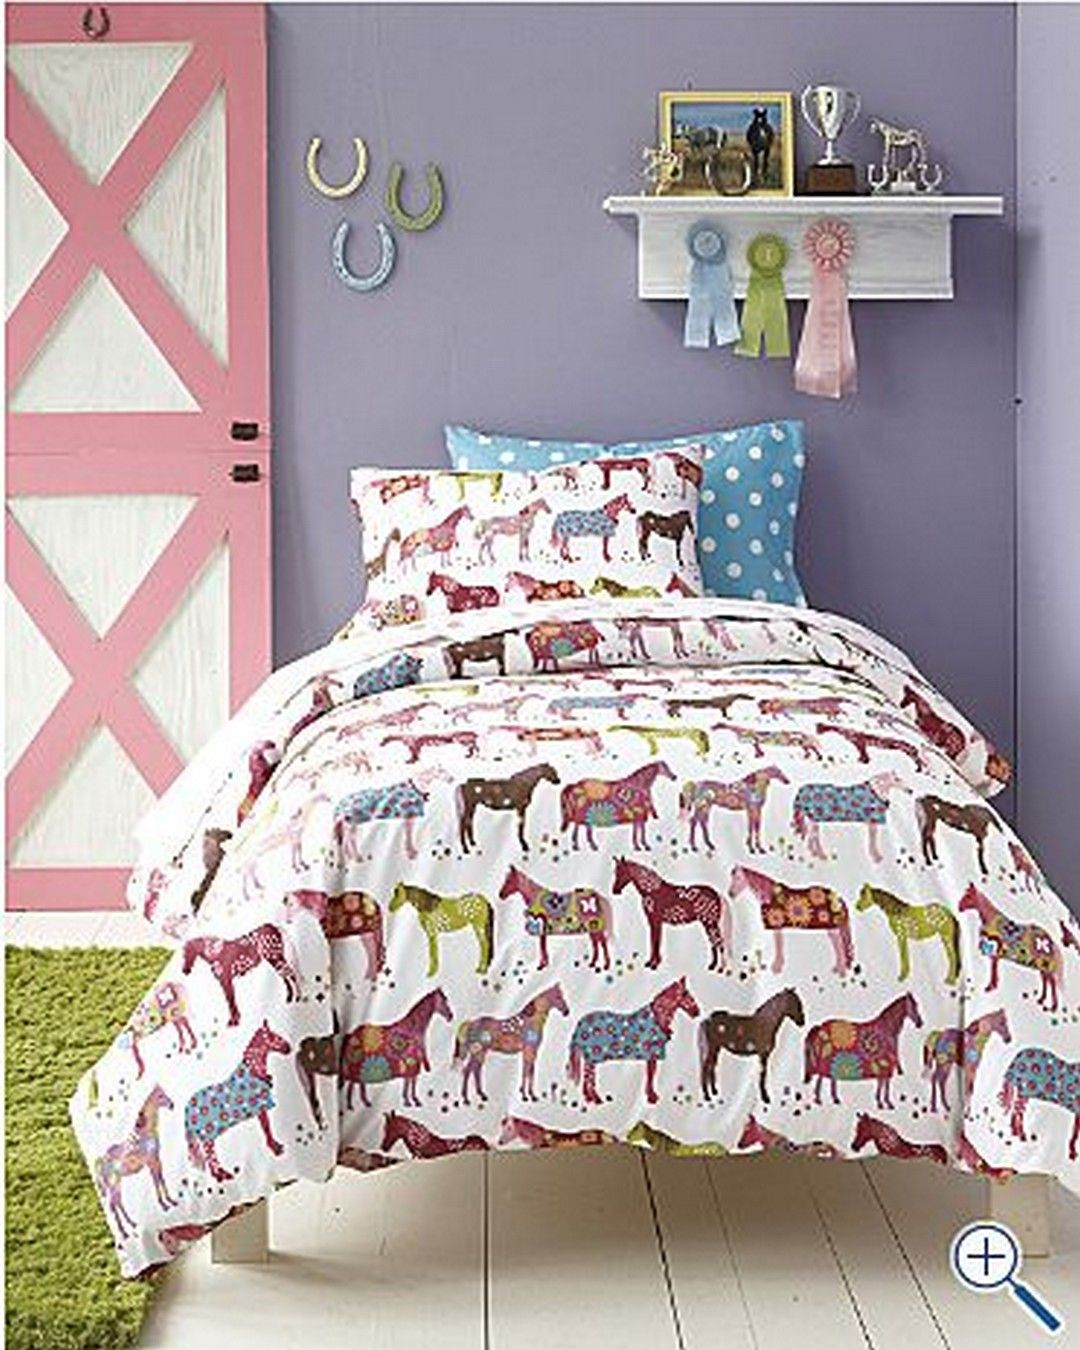 decorating girl's bedroom usually uses a cute theme and a